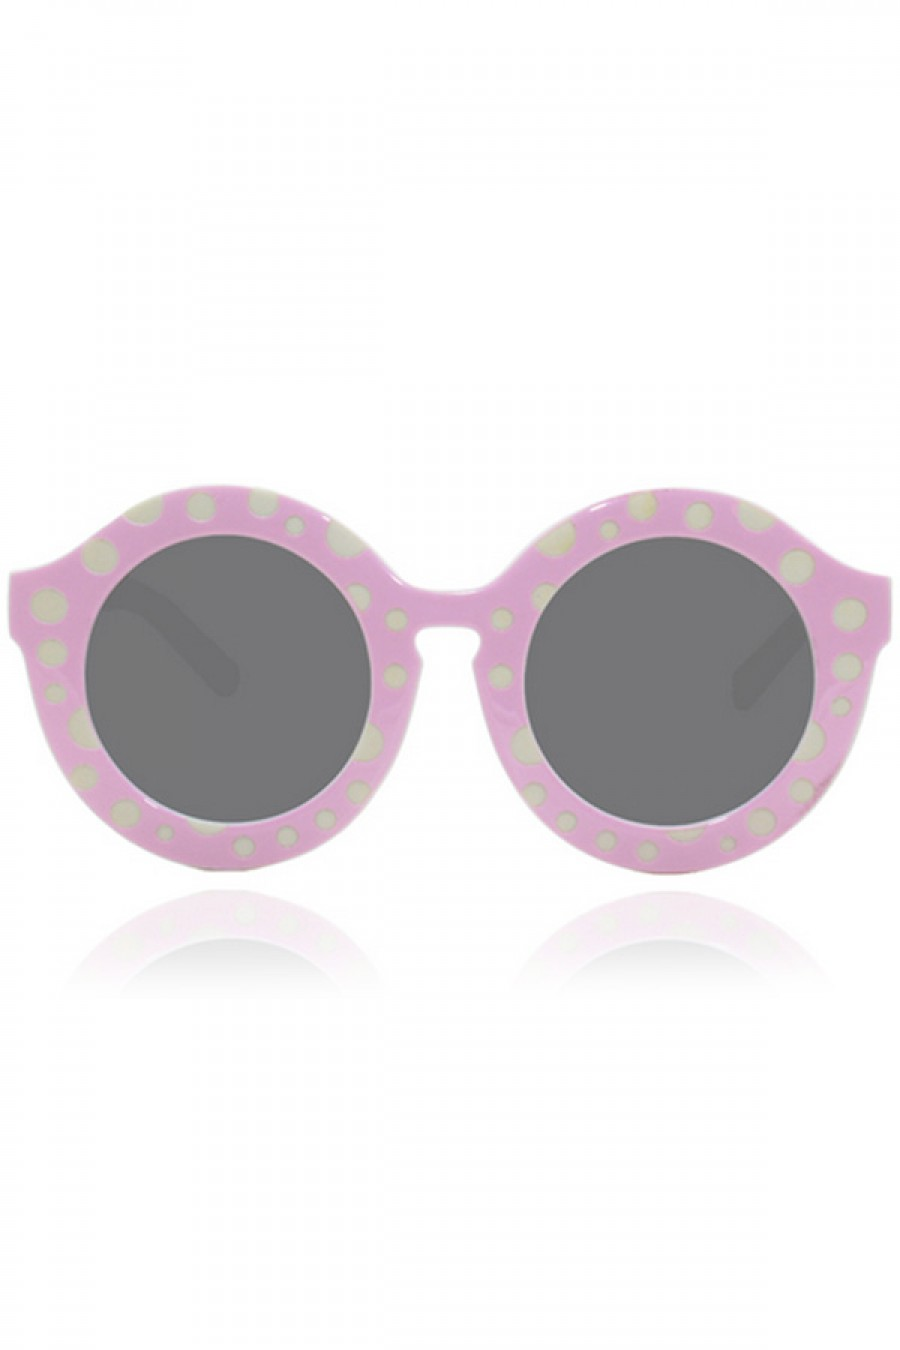 Penelopy sunglasses in polka dot pink